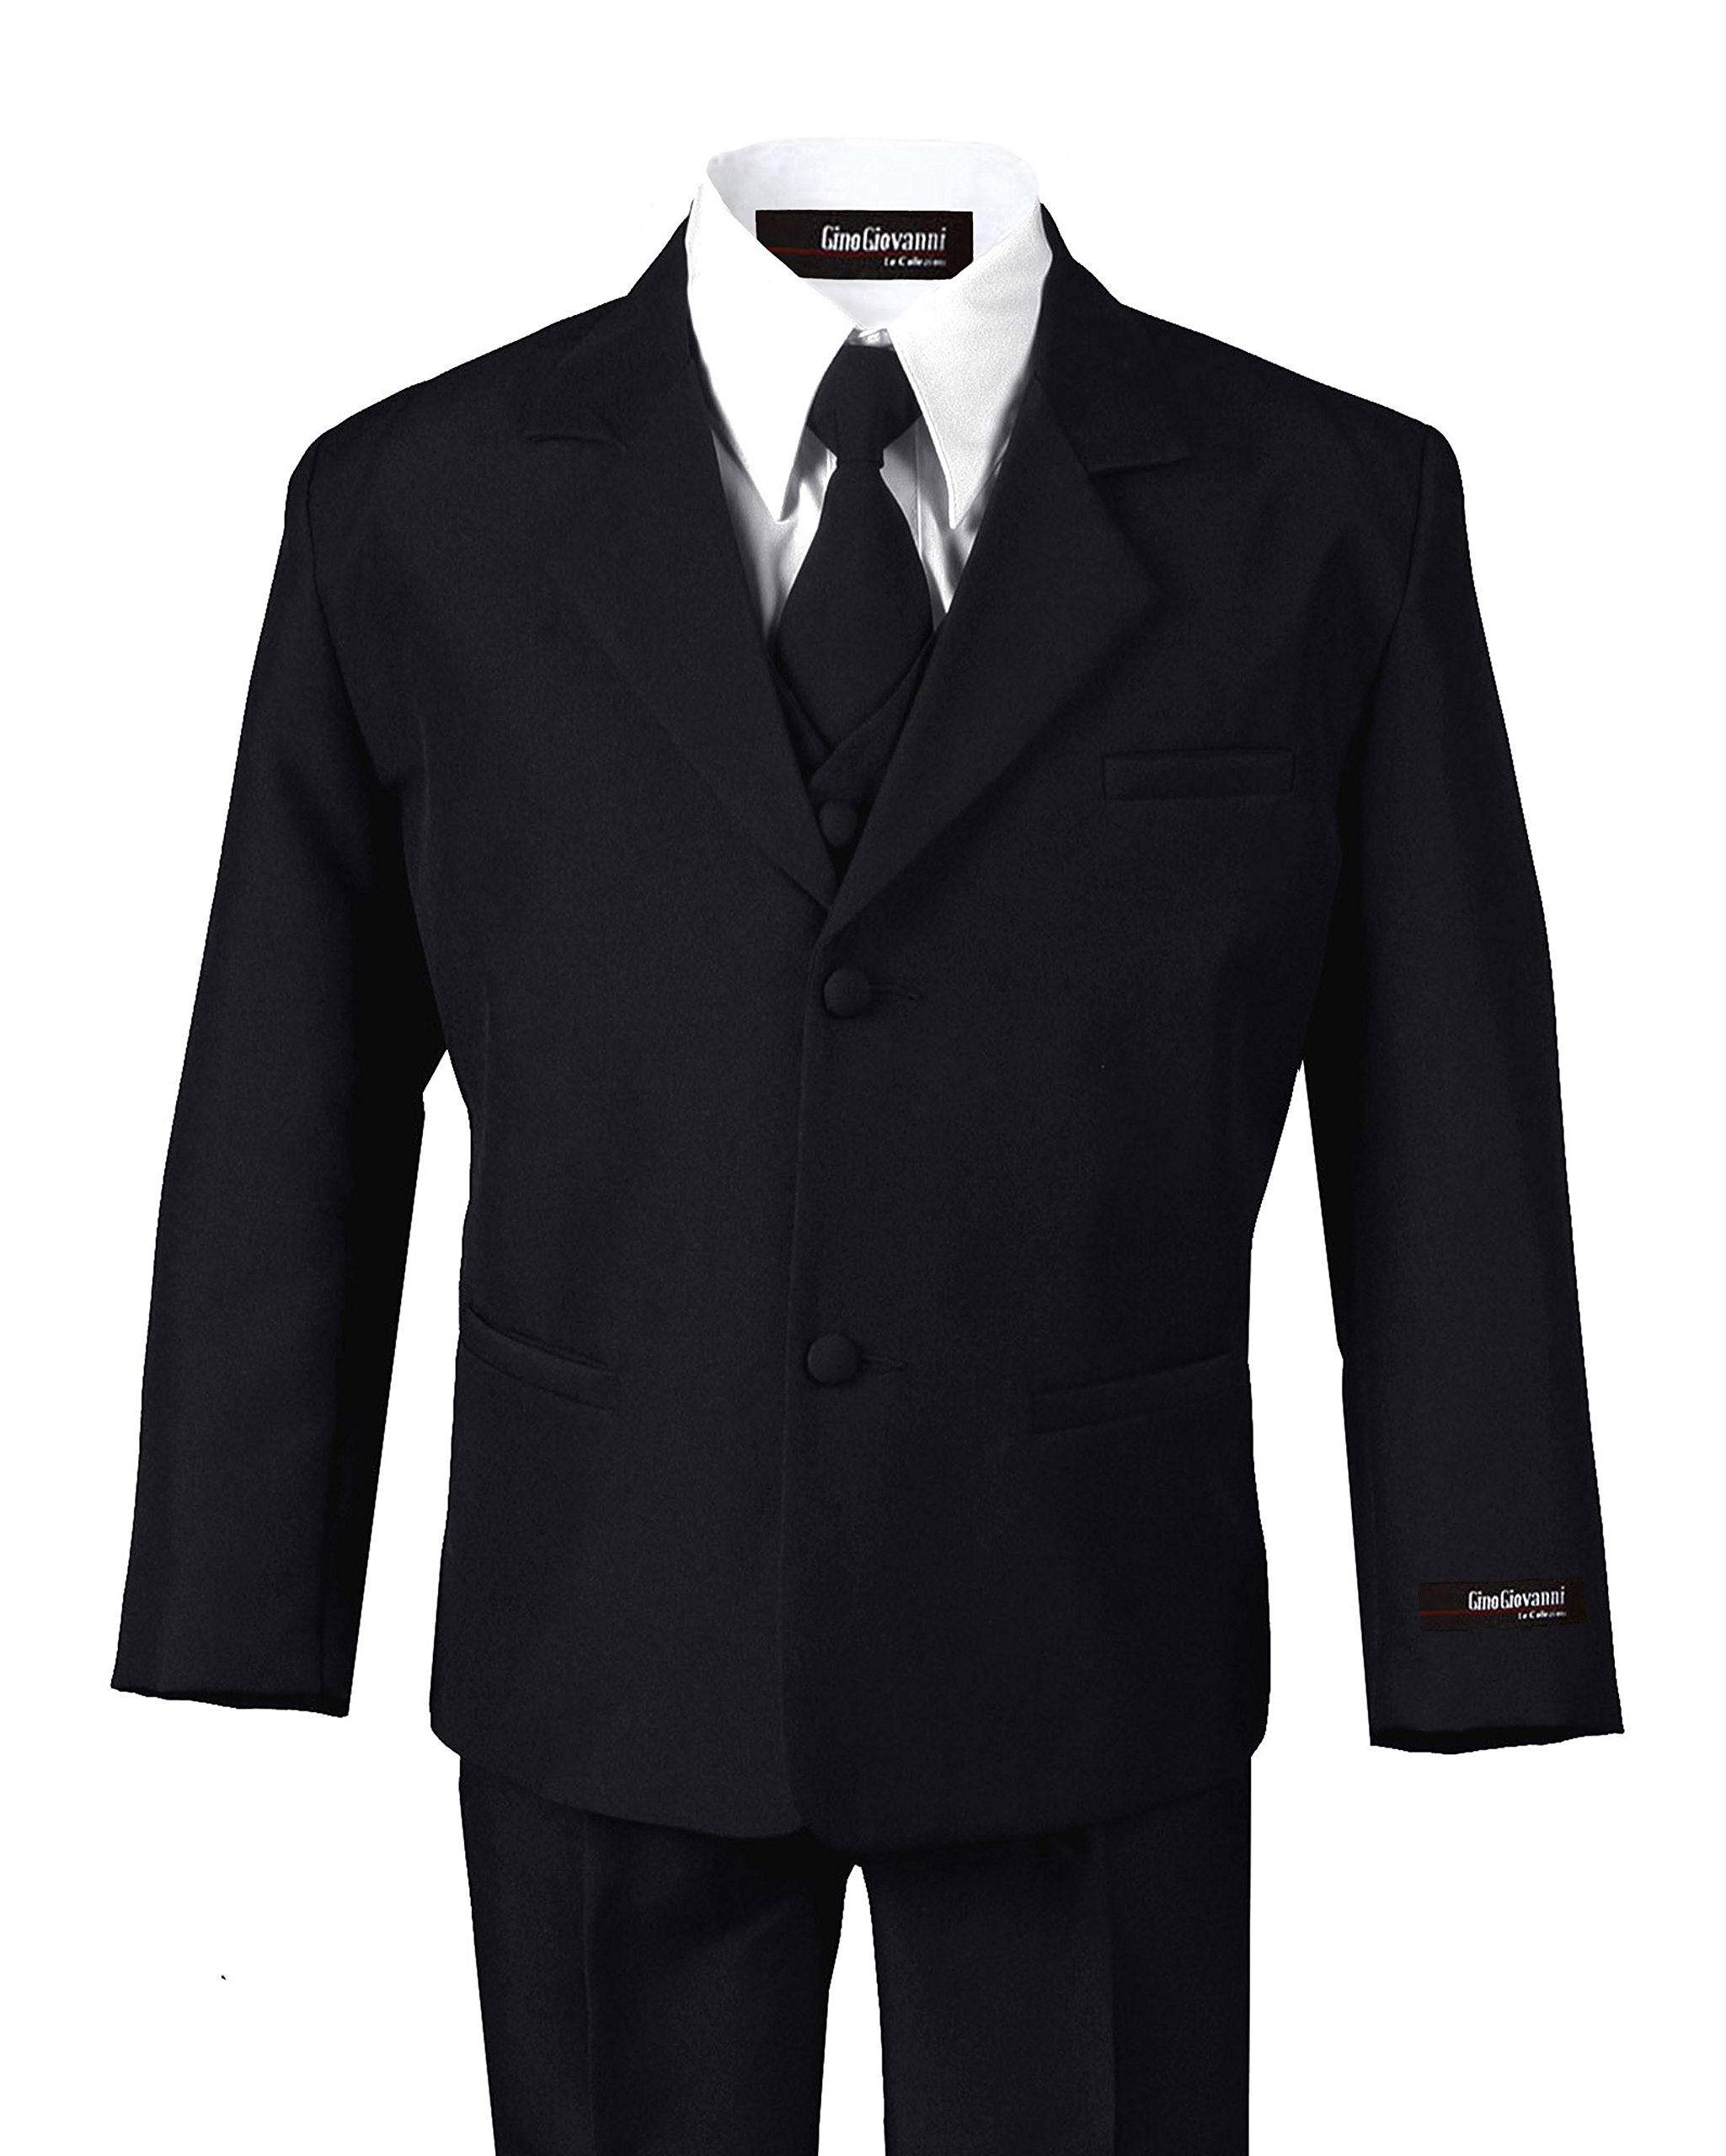 Formal Boy Black Suit From Baby to Teen (16)